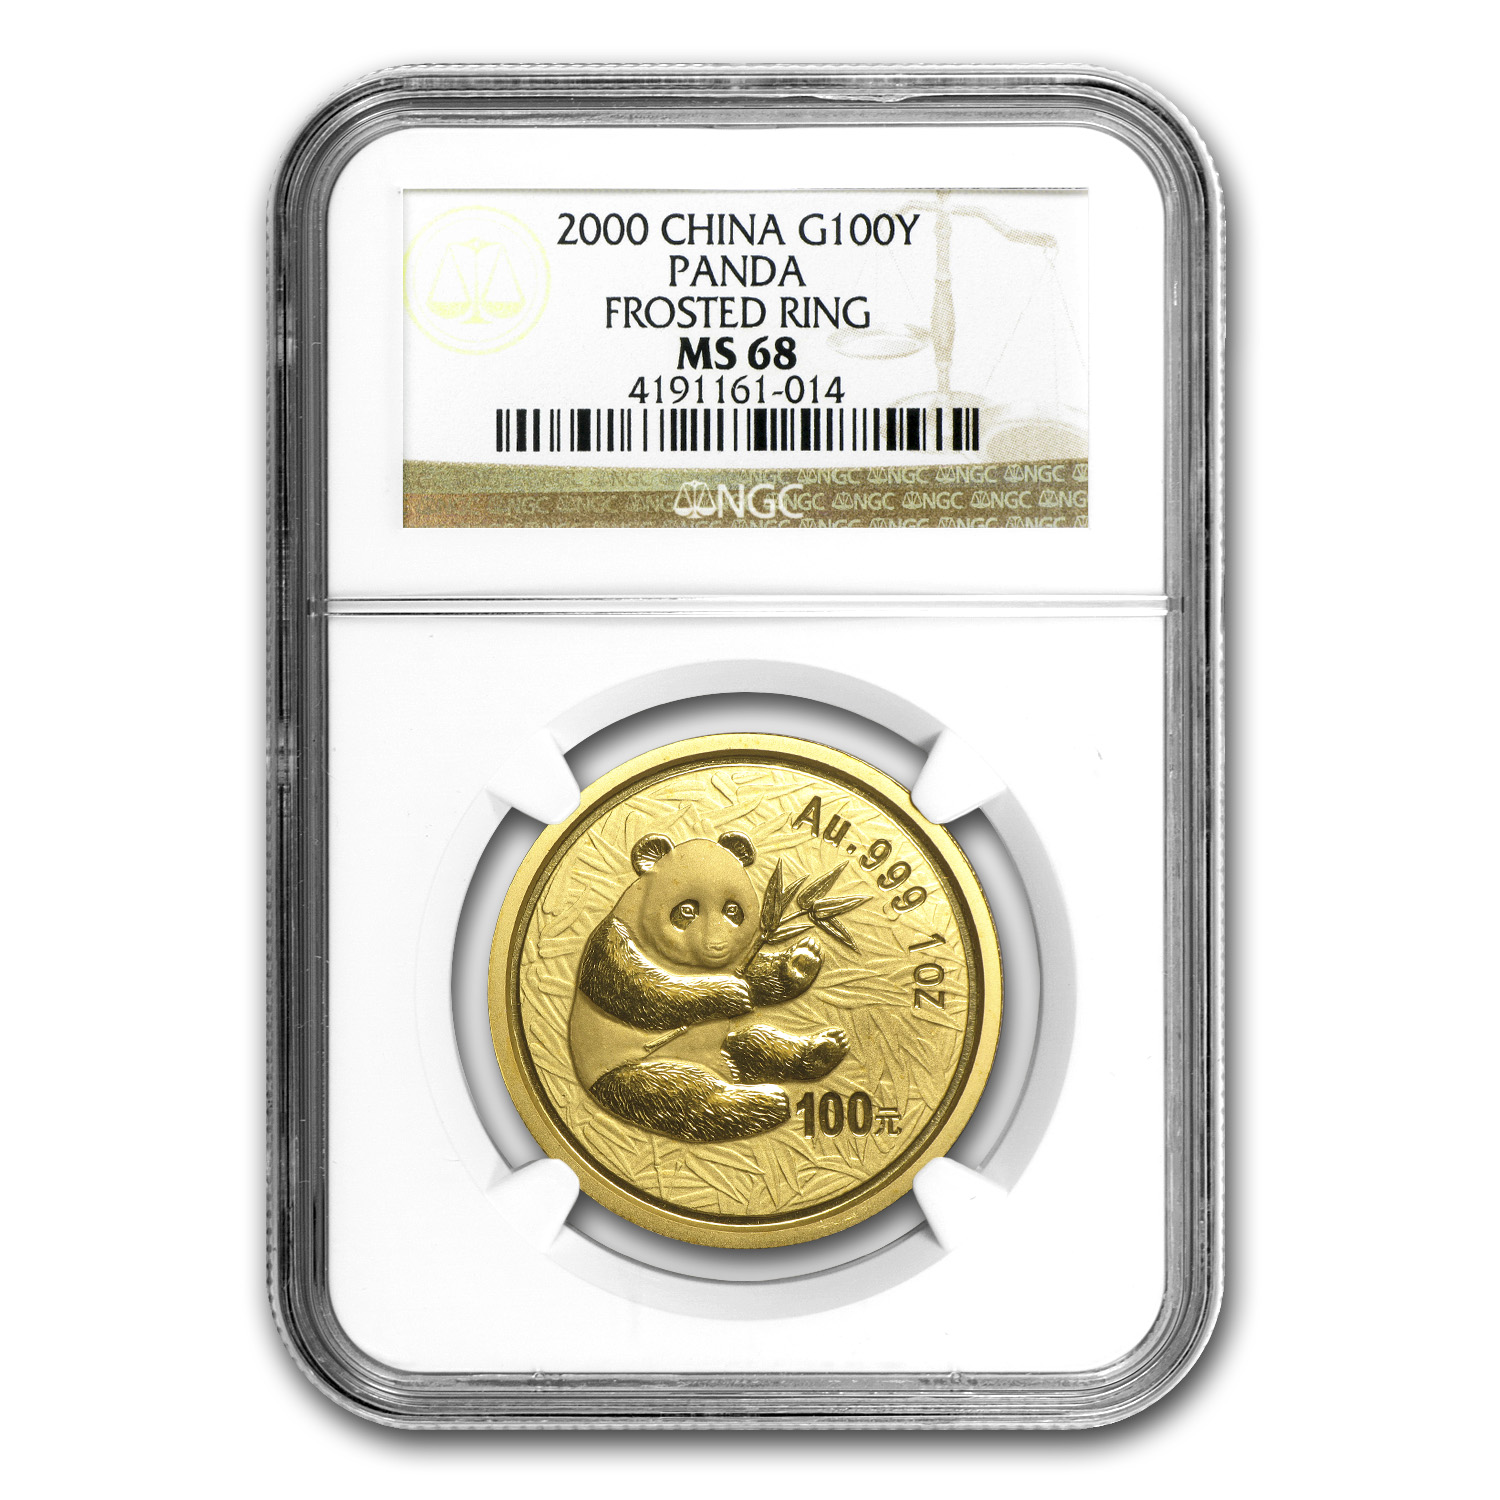 2000 China 1 oz Gold Panda Frosted Ring MS-68 NGC